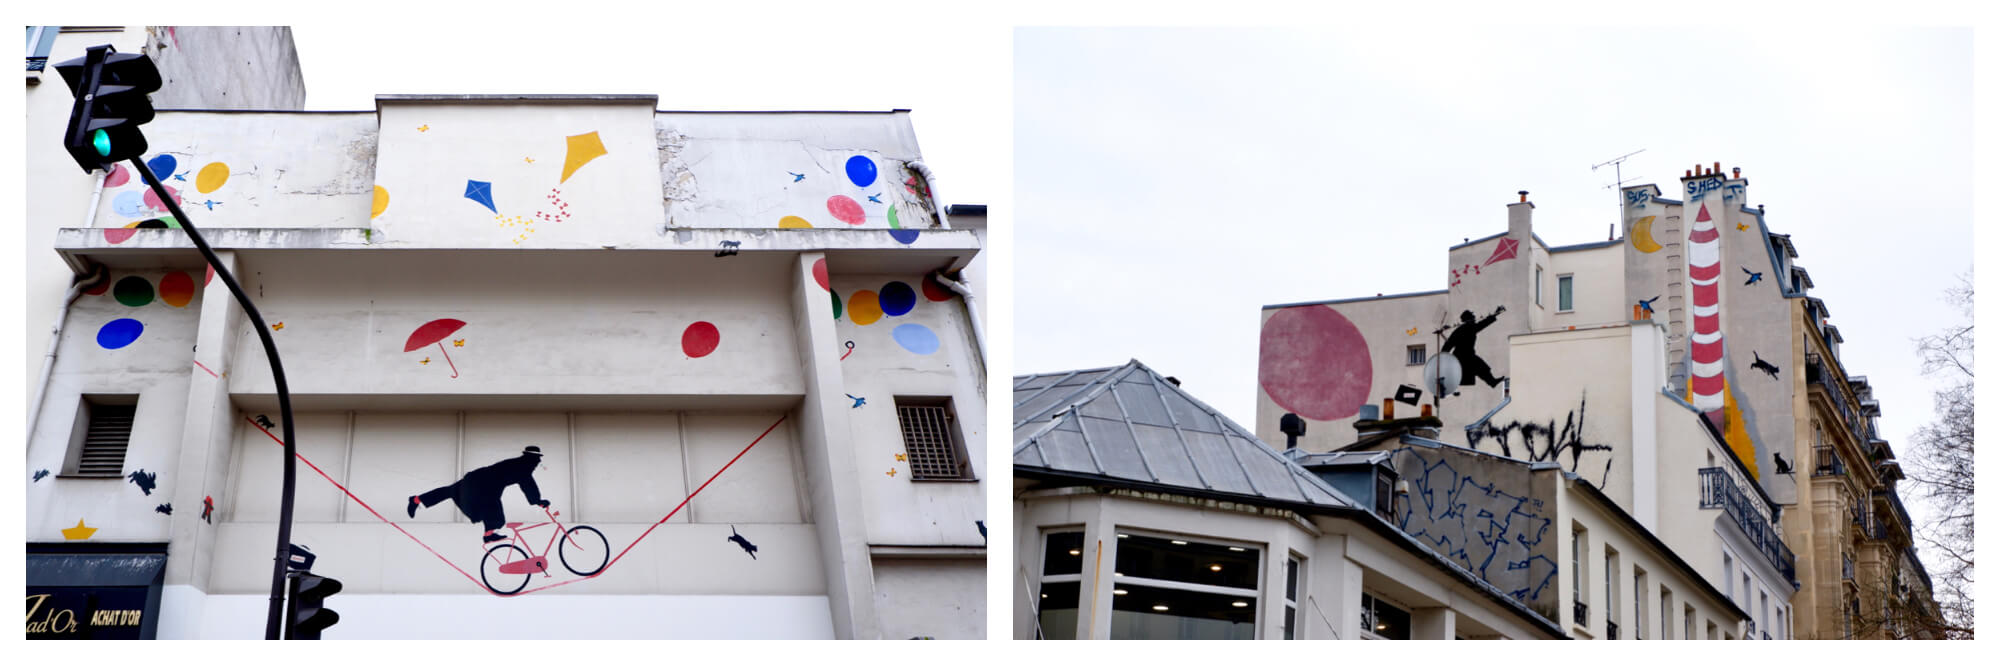 Two images of the same street artist's work. Left: the artwork is a man on a bicycle upon a tight rope with primary coloured umbrella, kites and balloons. There are also some black cats and rabbits. Right: the artwork is a man climbing up the side of the building with a red kite, yellow moon and red rocket, there are also some black cats.